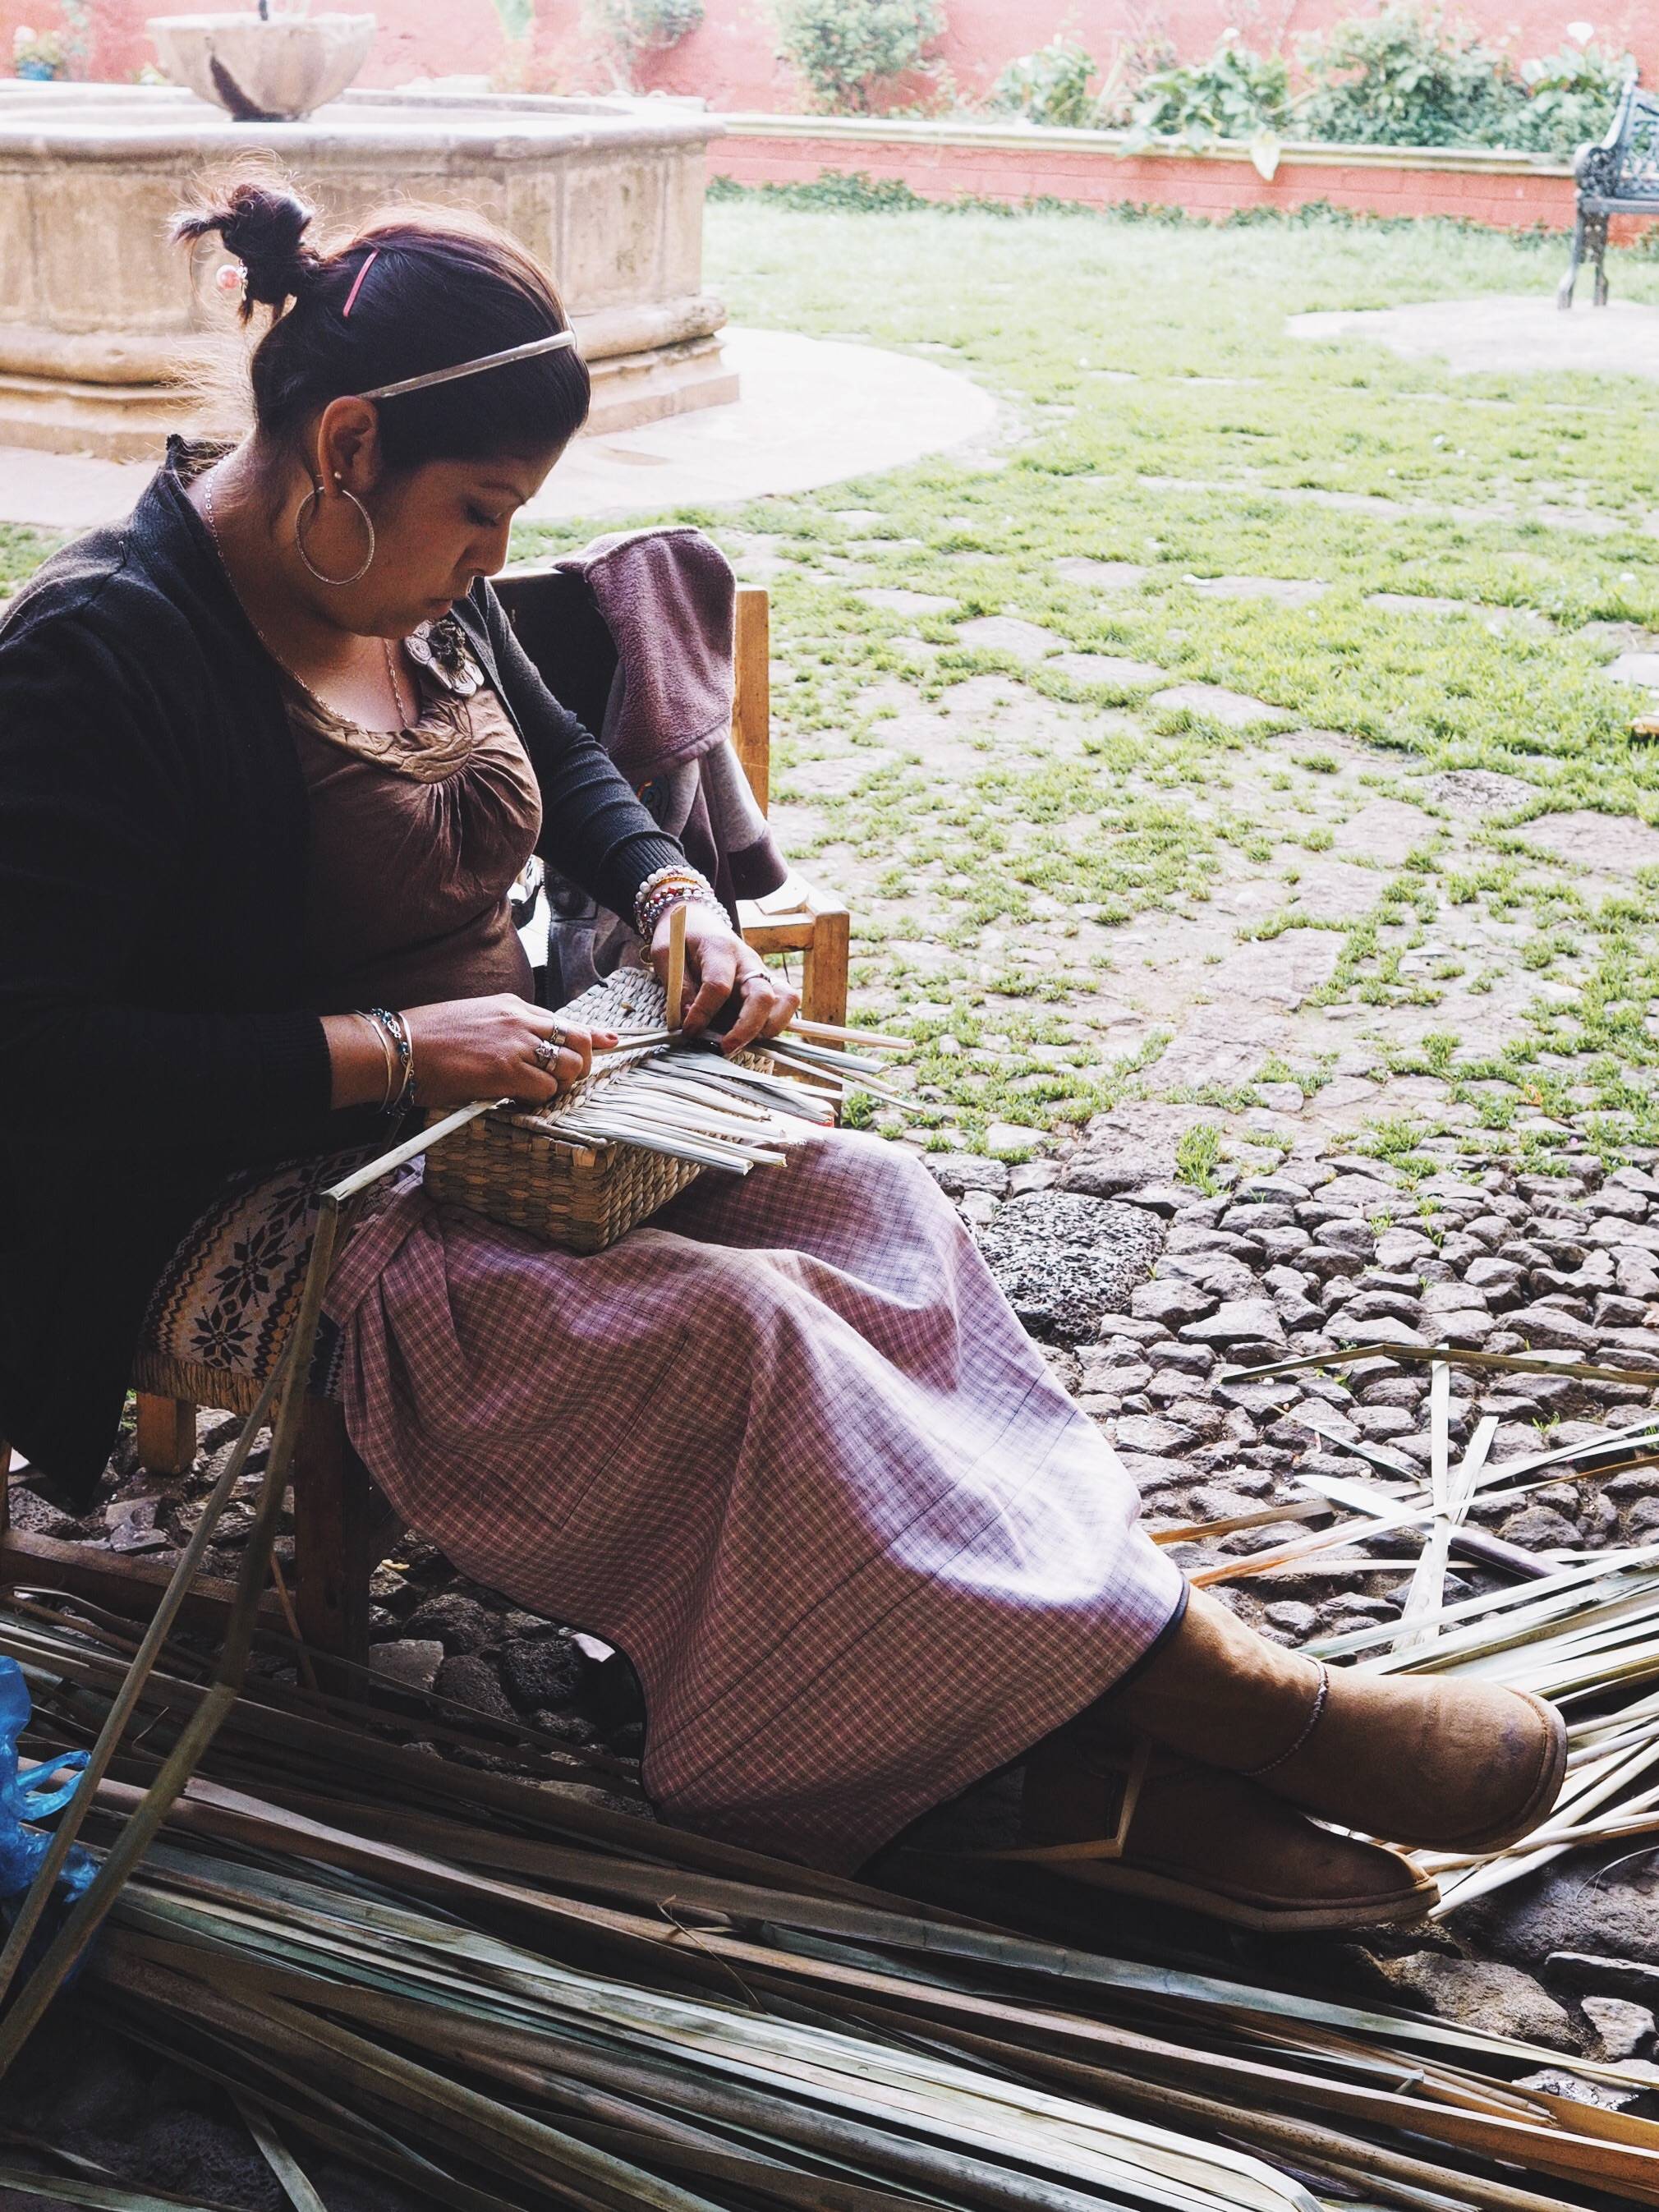 Local basketweaving in action